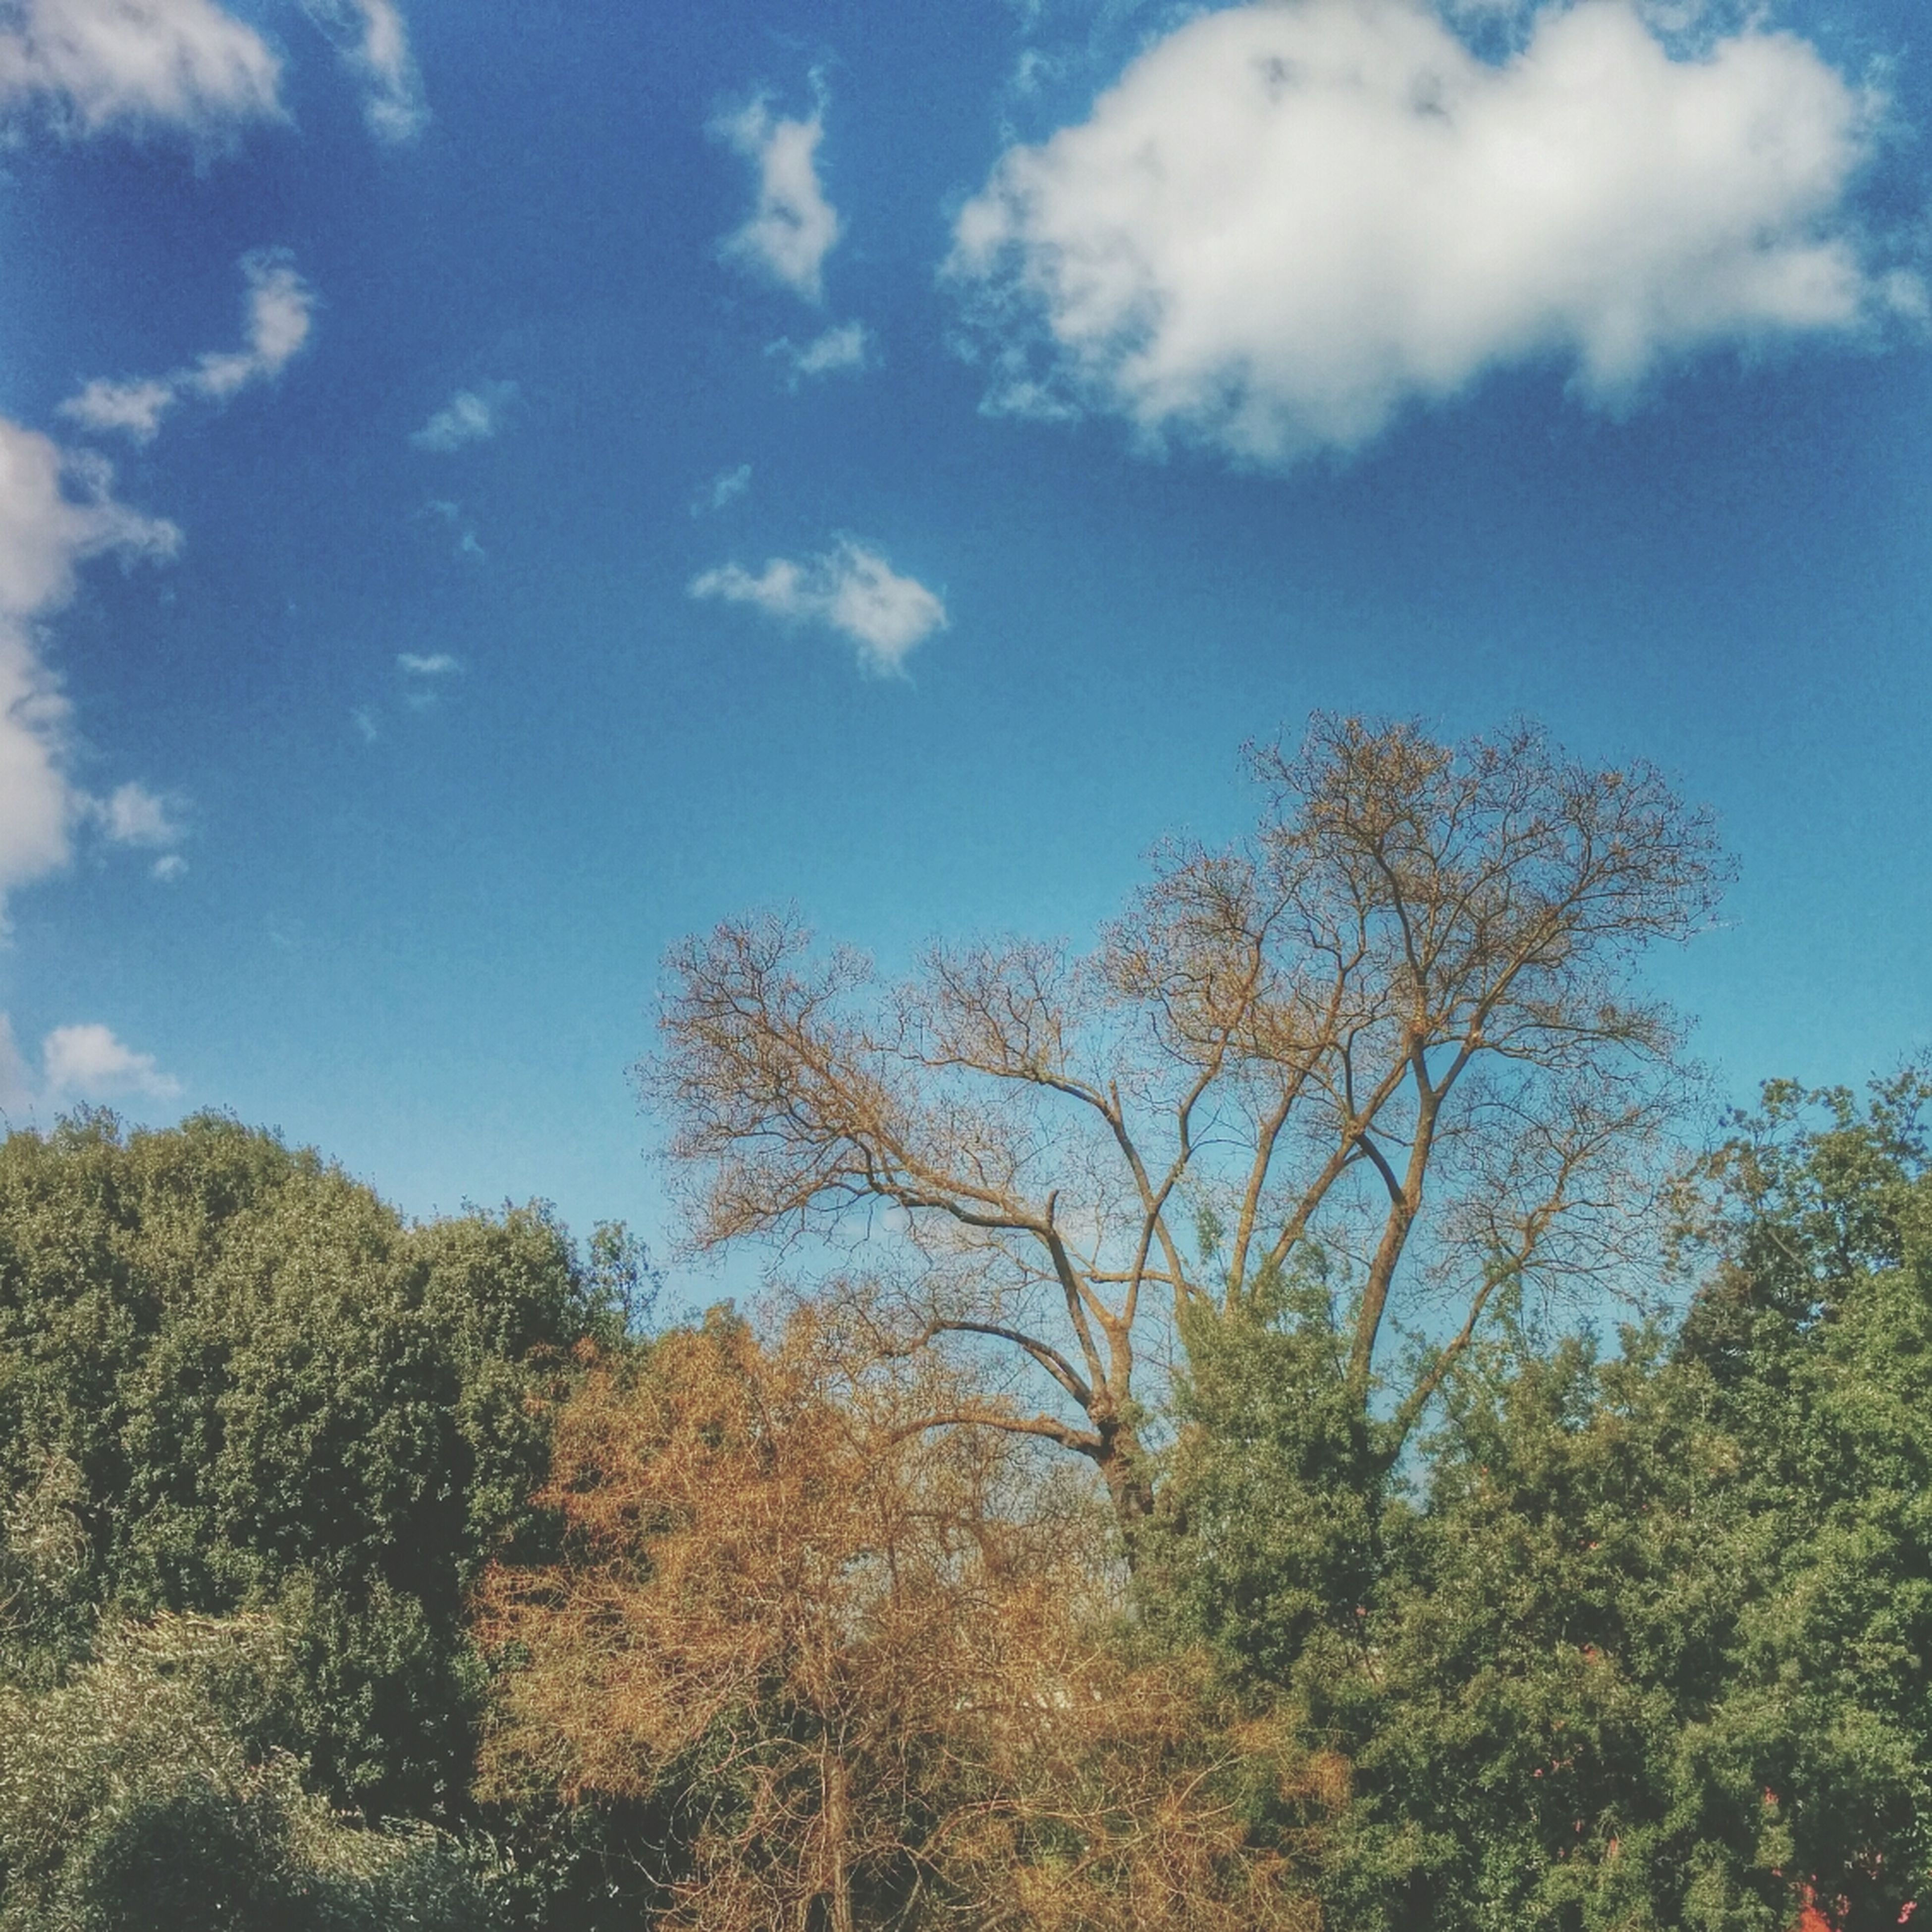 tree, sky, tranquility, growth, low angle view, blue, tranquil scene, beauty in nature, nature, cloud - sky, scenics, cloud, green color, branch, day, outdoors, no people, idyllic, non-urban scene, sunlight